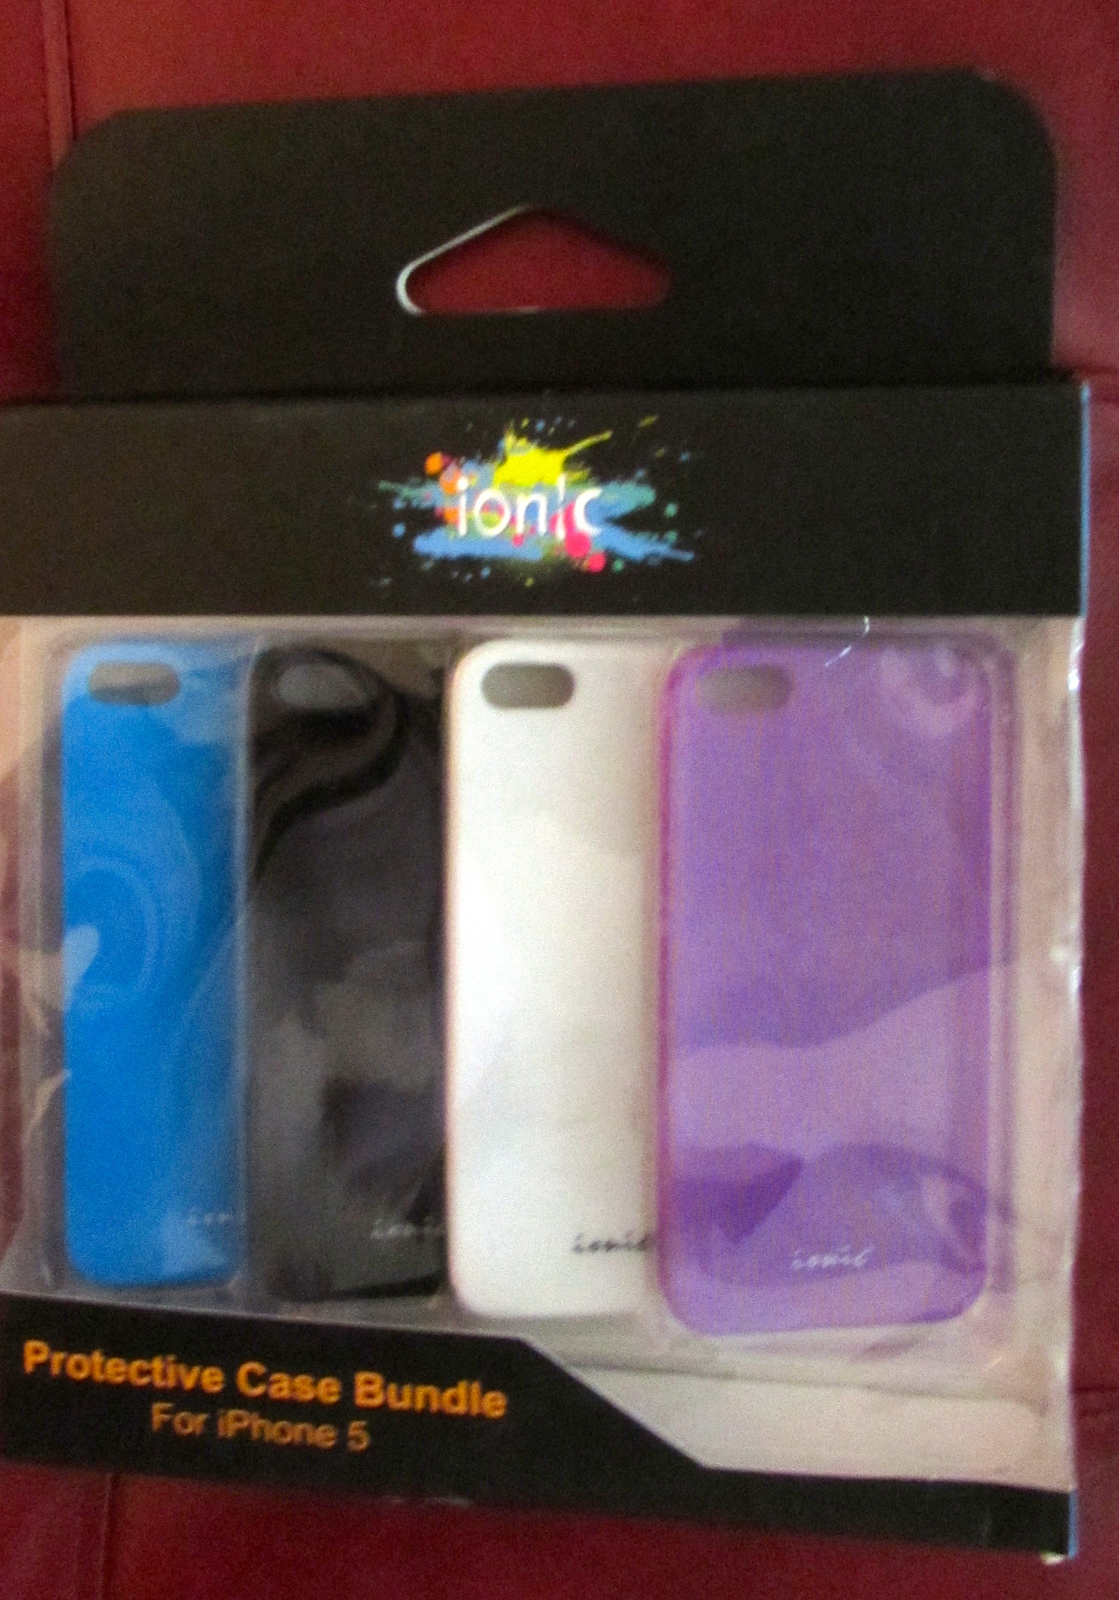 Ionic 4 SLIM Slider Cases with Screen Protector for iPhone 5